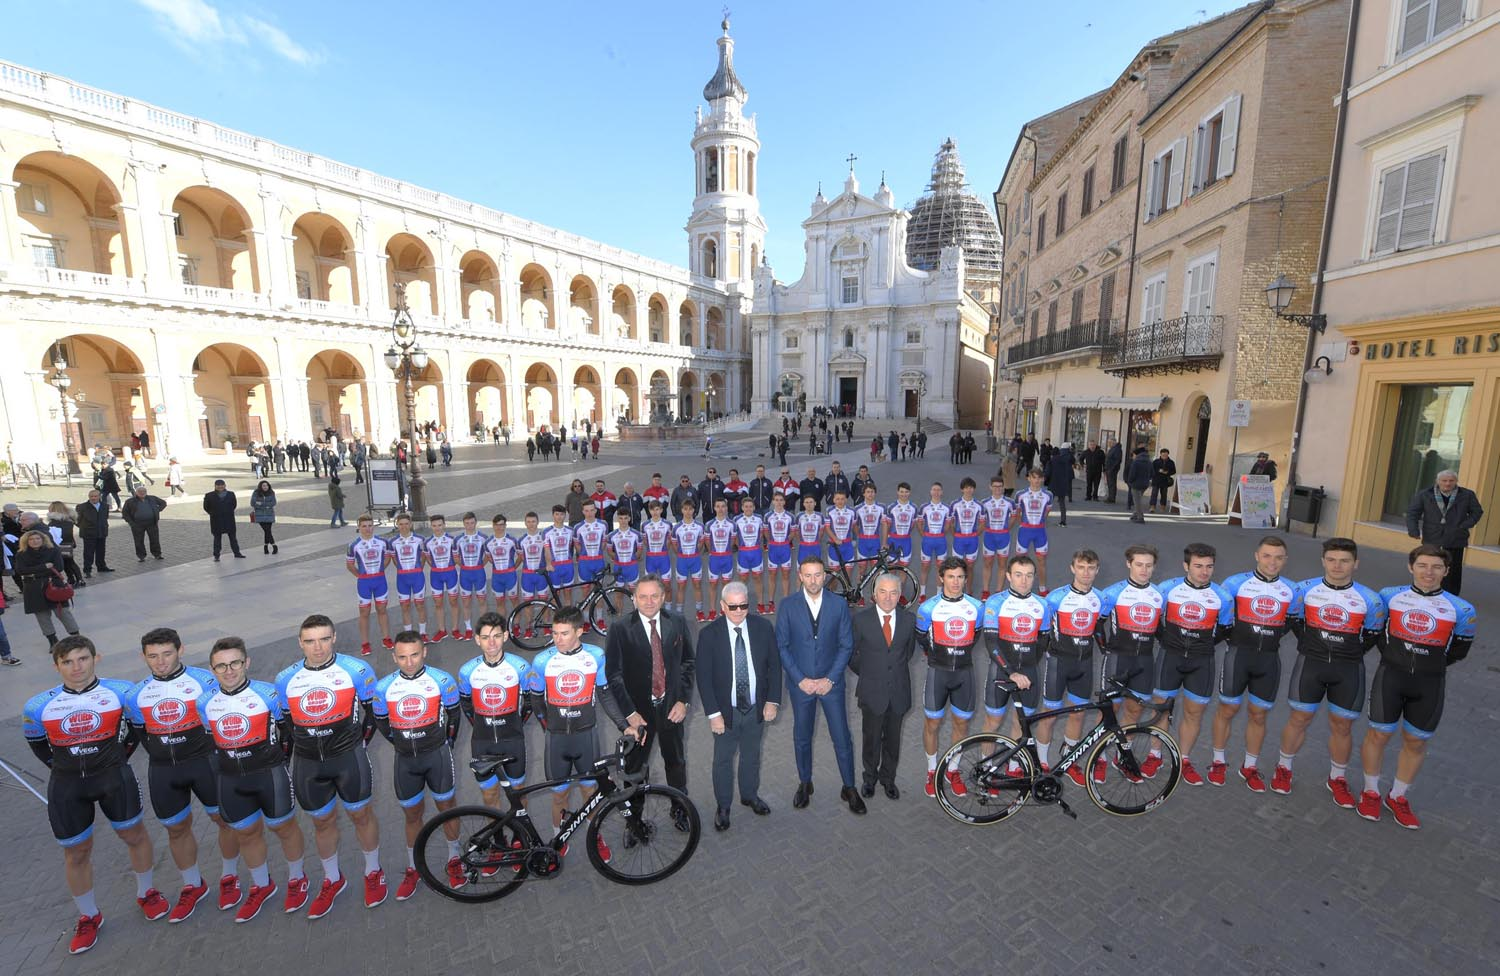 Work Service Cycling Group, si torna a pedalare